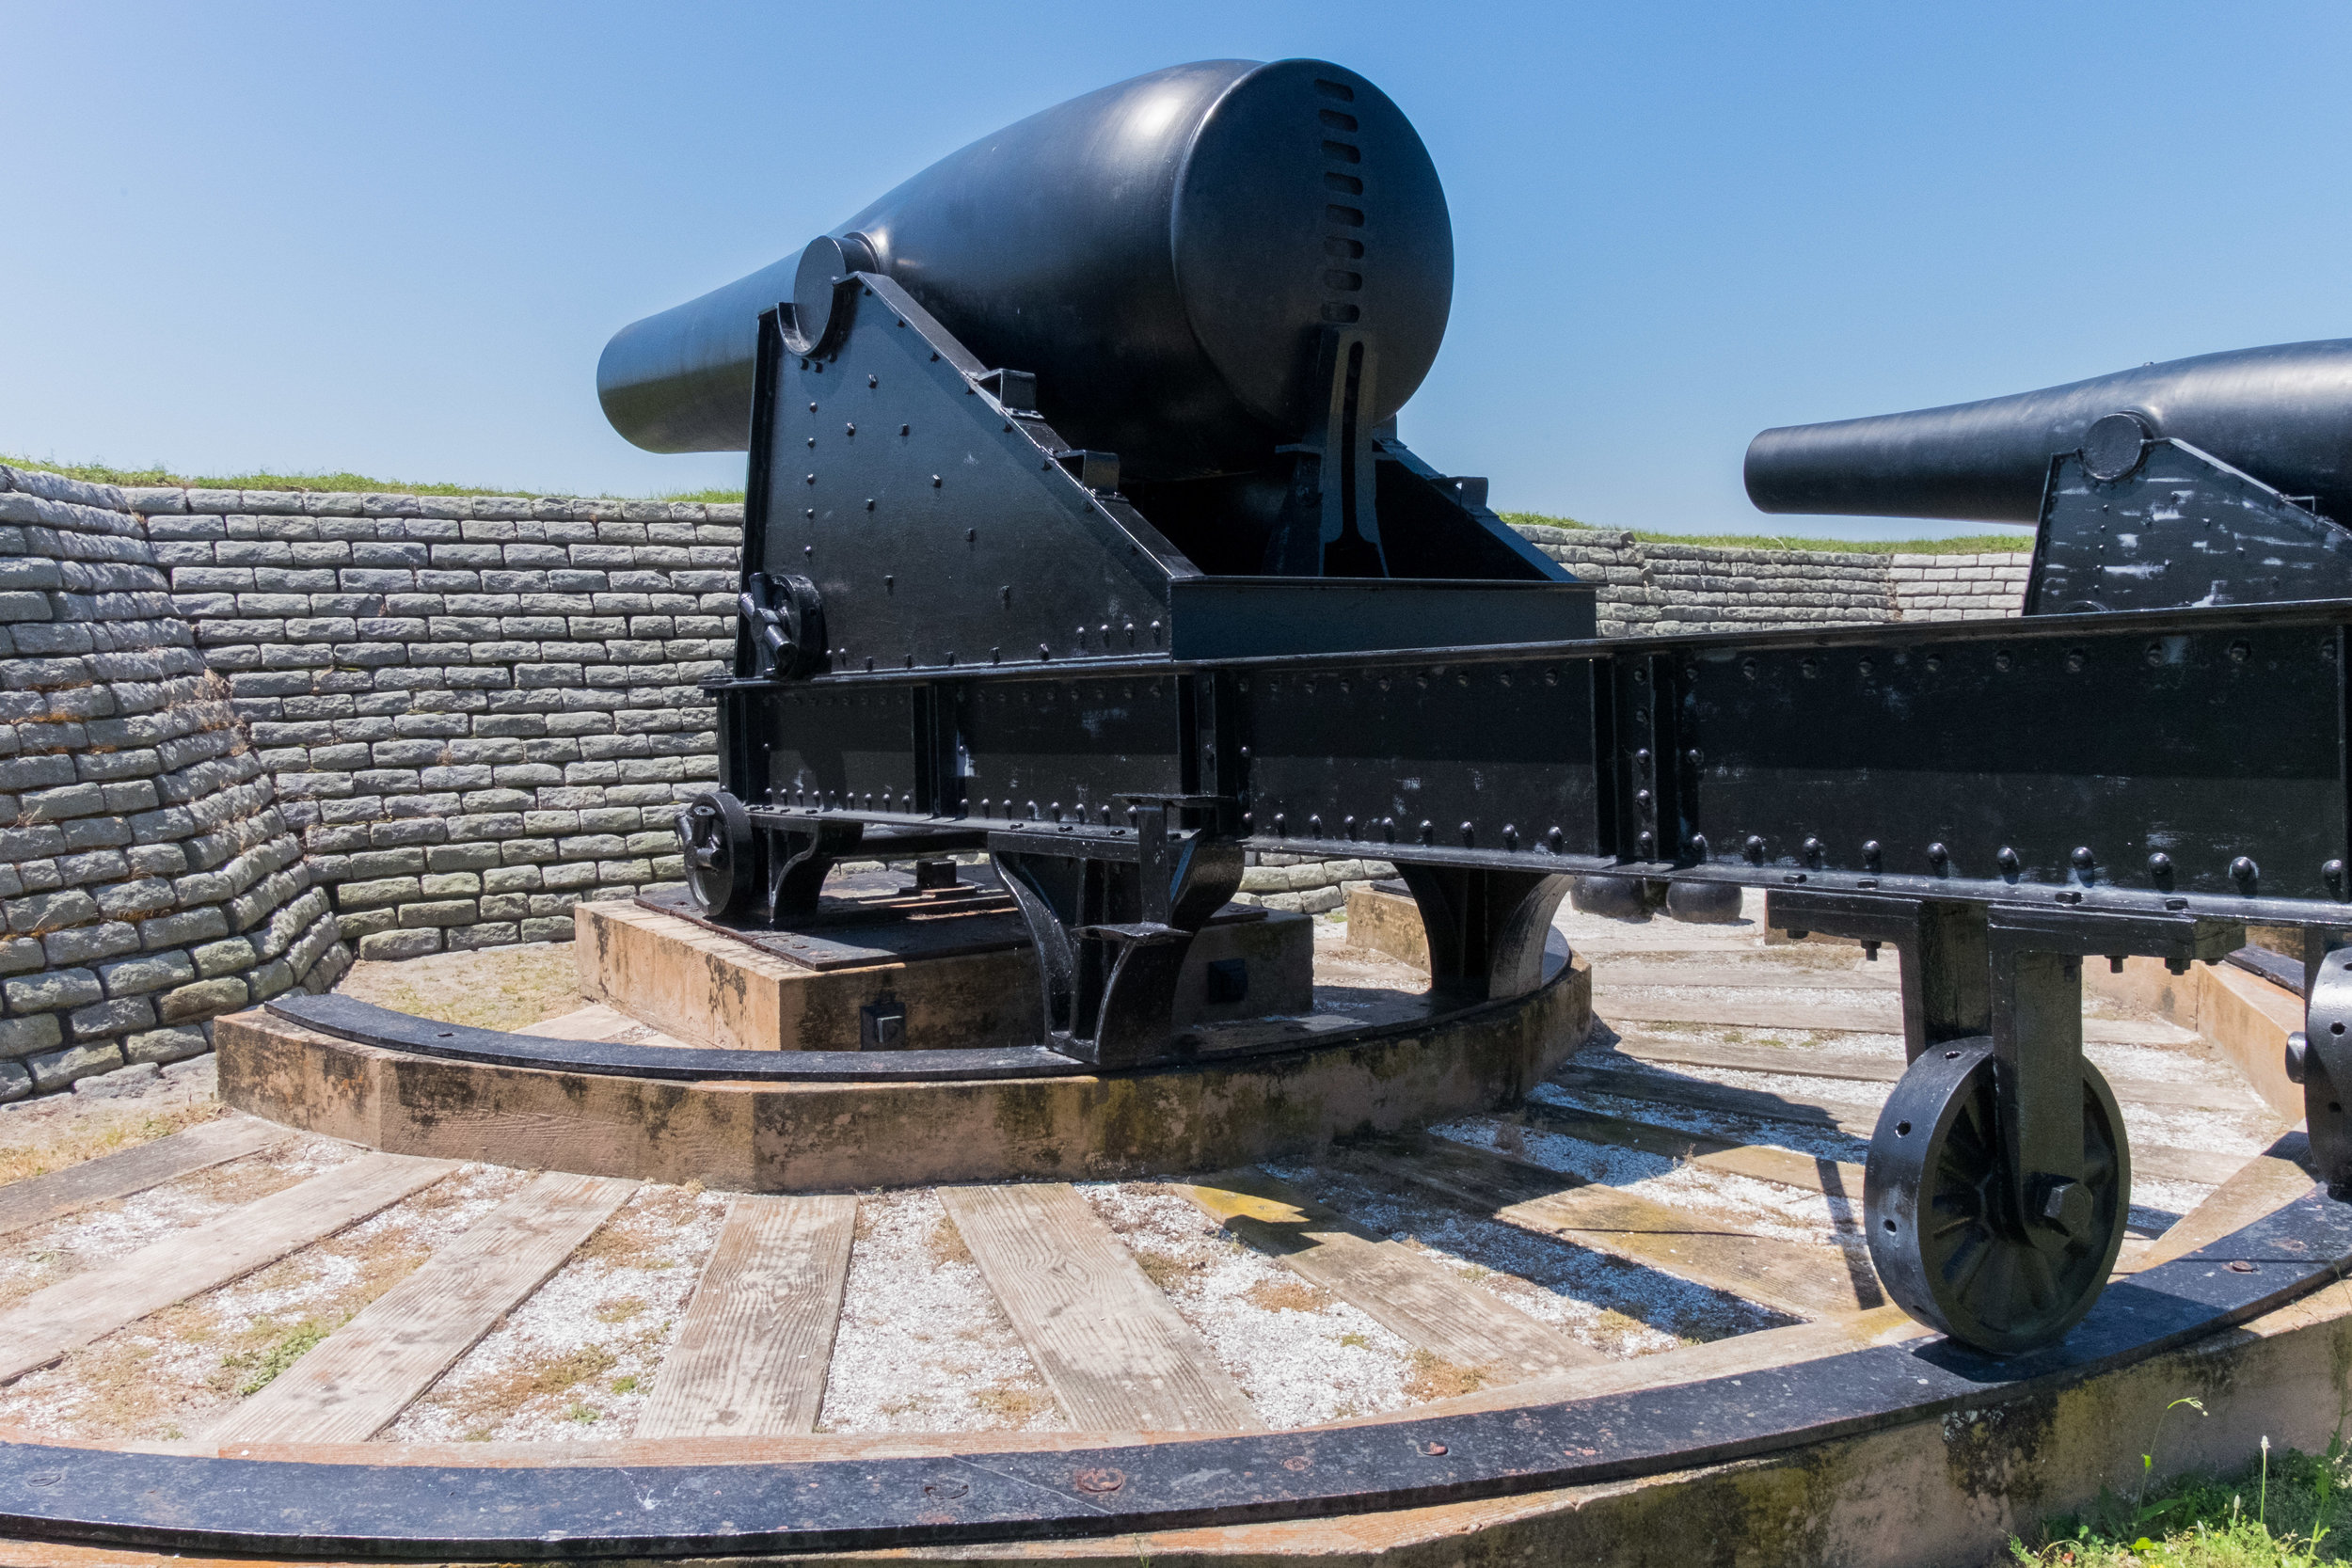 Fort Moultrie in part of the Fort Sumter National Monument in Charlestown, SC. This fort was where South Carolina gets the nickname Palmetto State. This fort is the only place to follow the entire history of seacoast defense can be traced starting in 1776 until it closed in 1947.